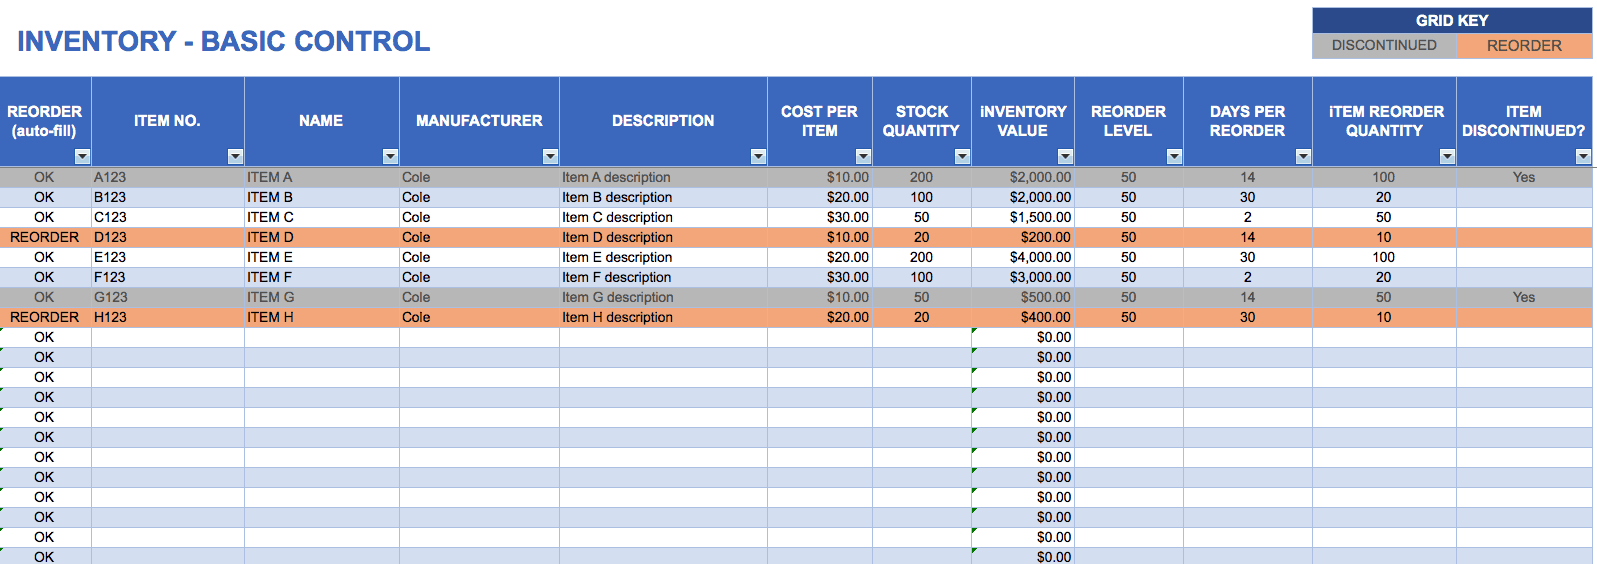 Free Excel Inventory Templates - Corporate stock ledger template